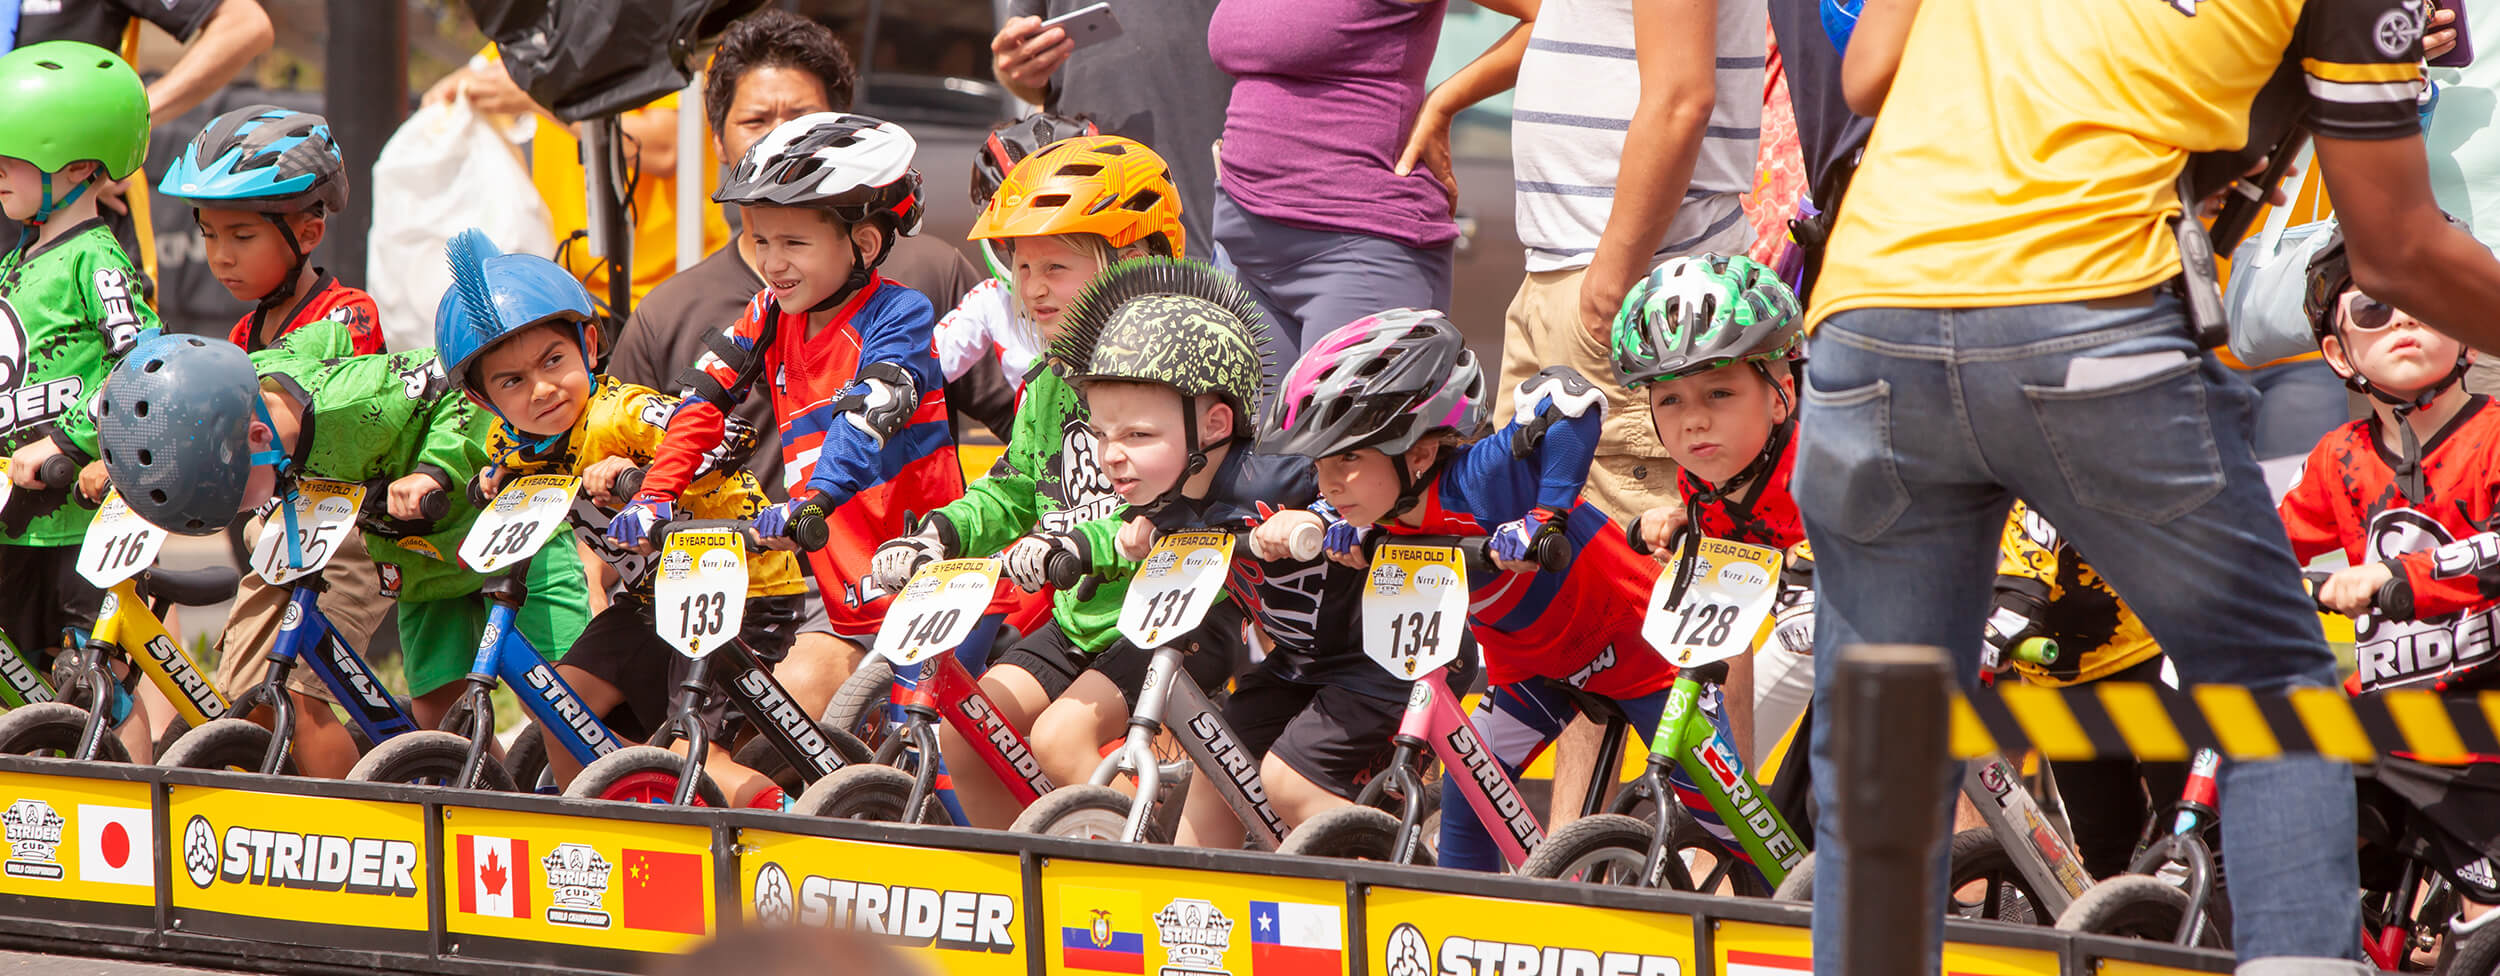 kids line up at Strider Cup race